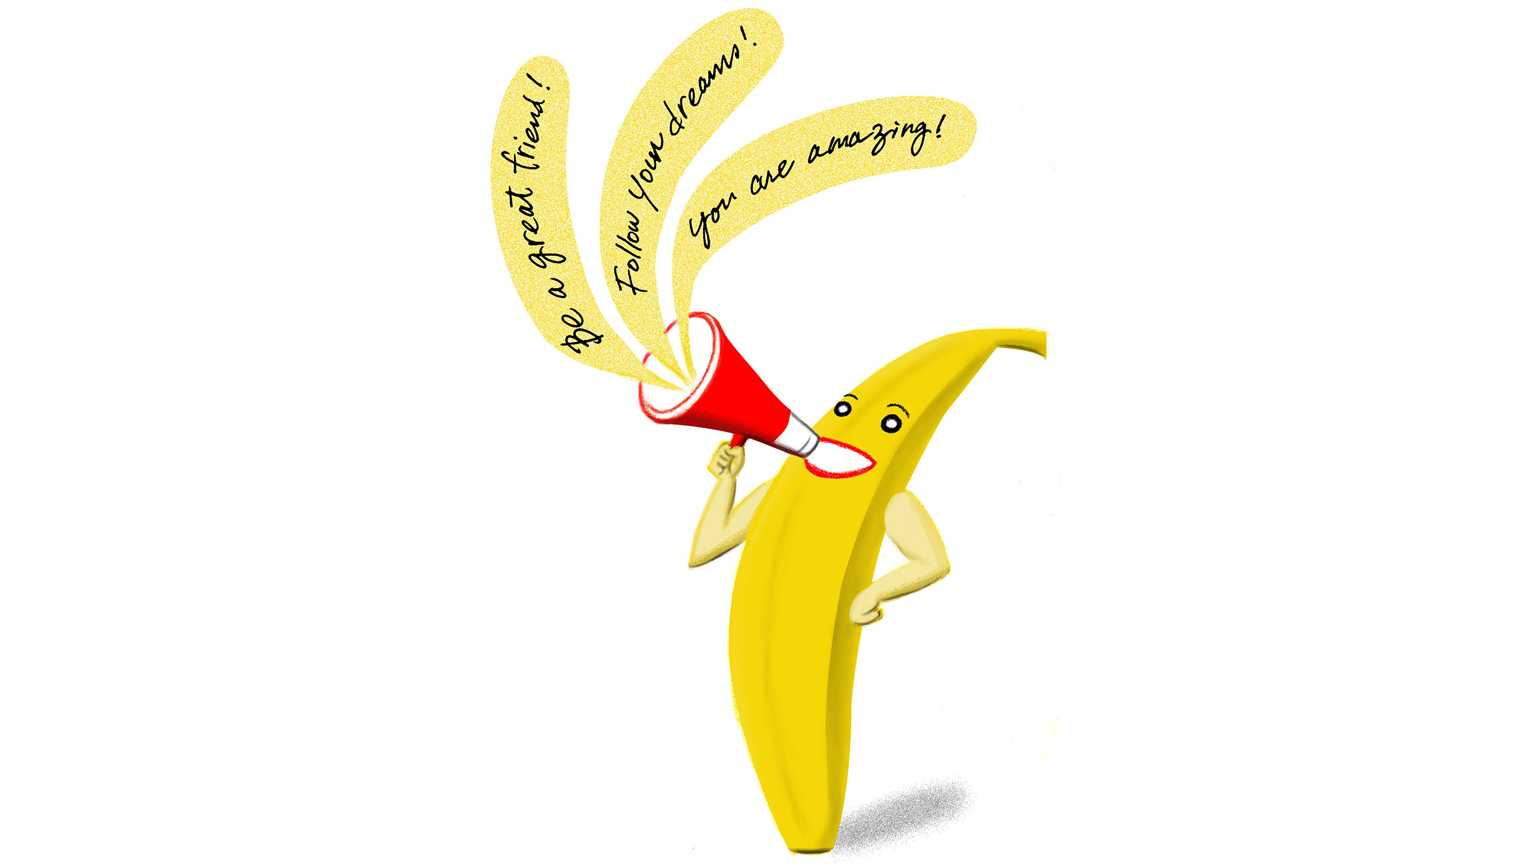 A talking banana saying phrases of encouragement and positivity.